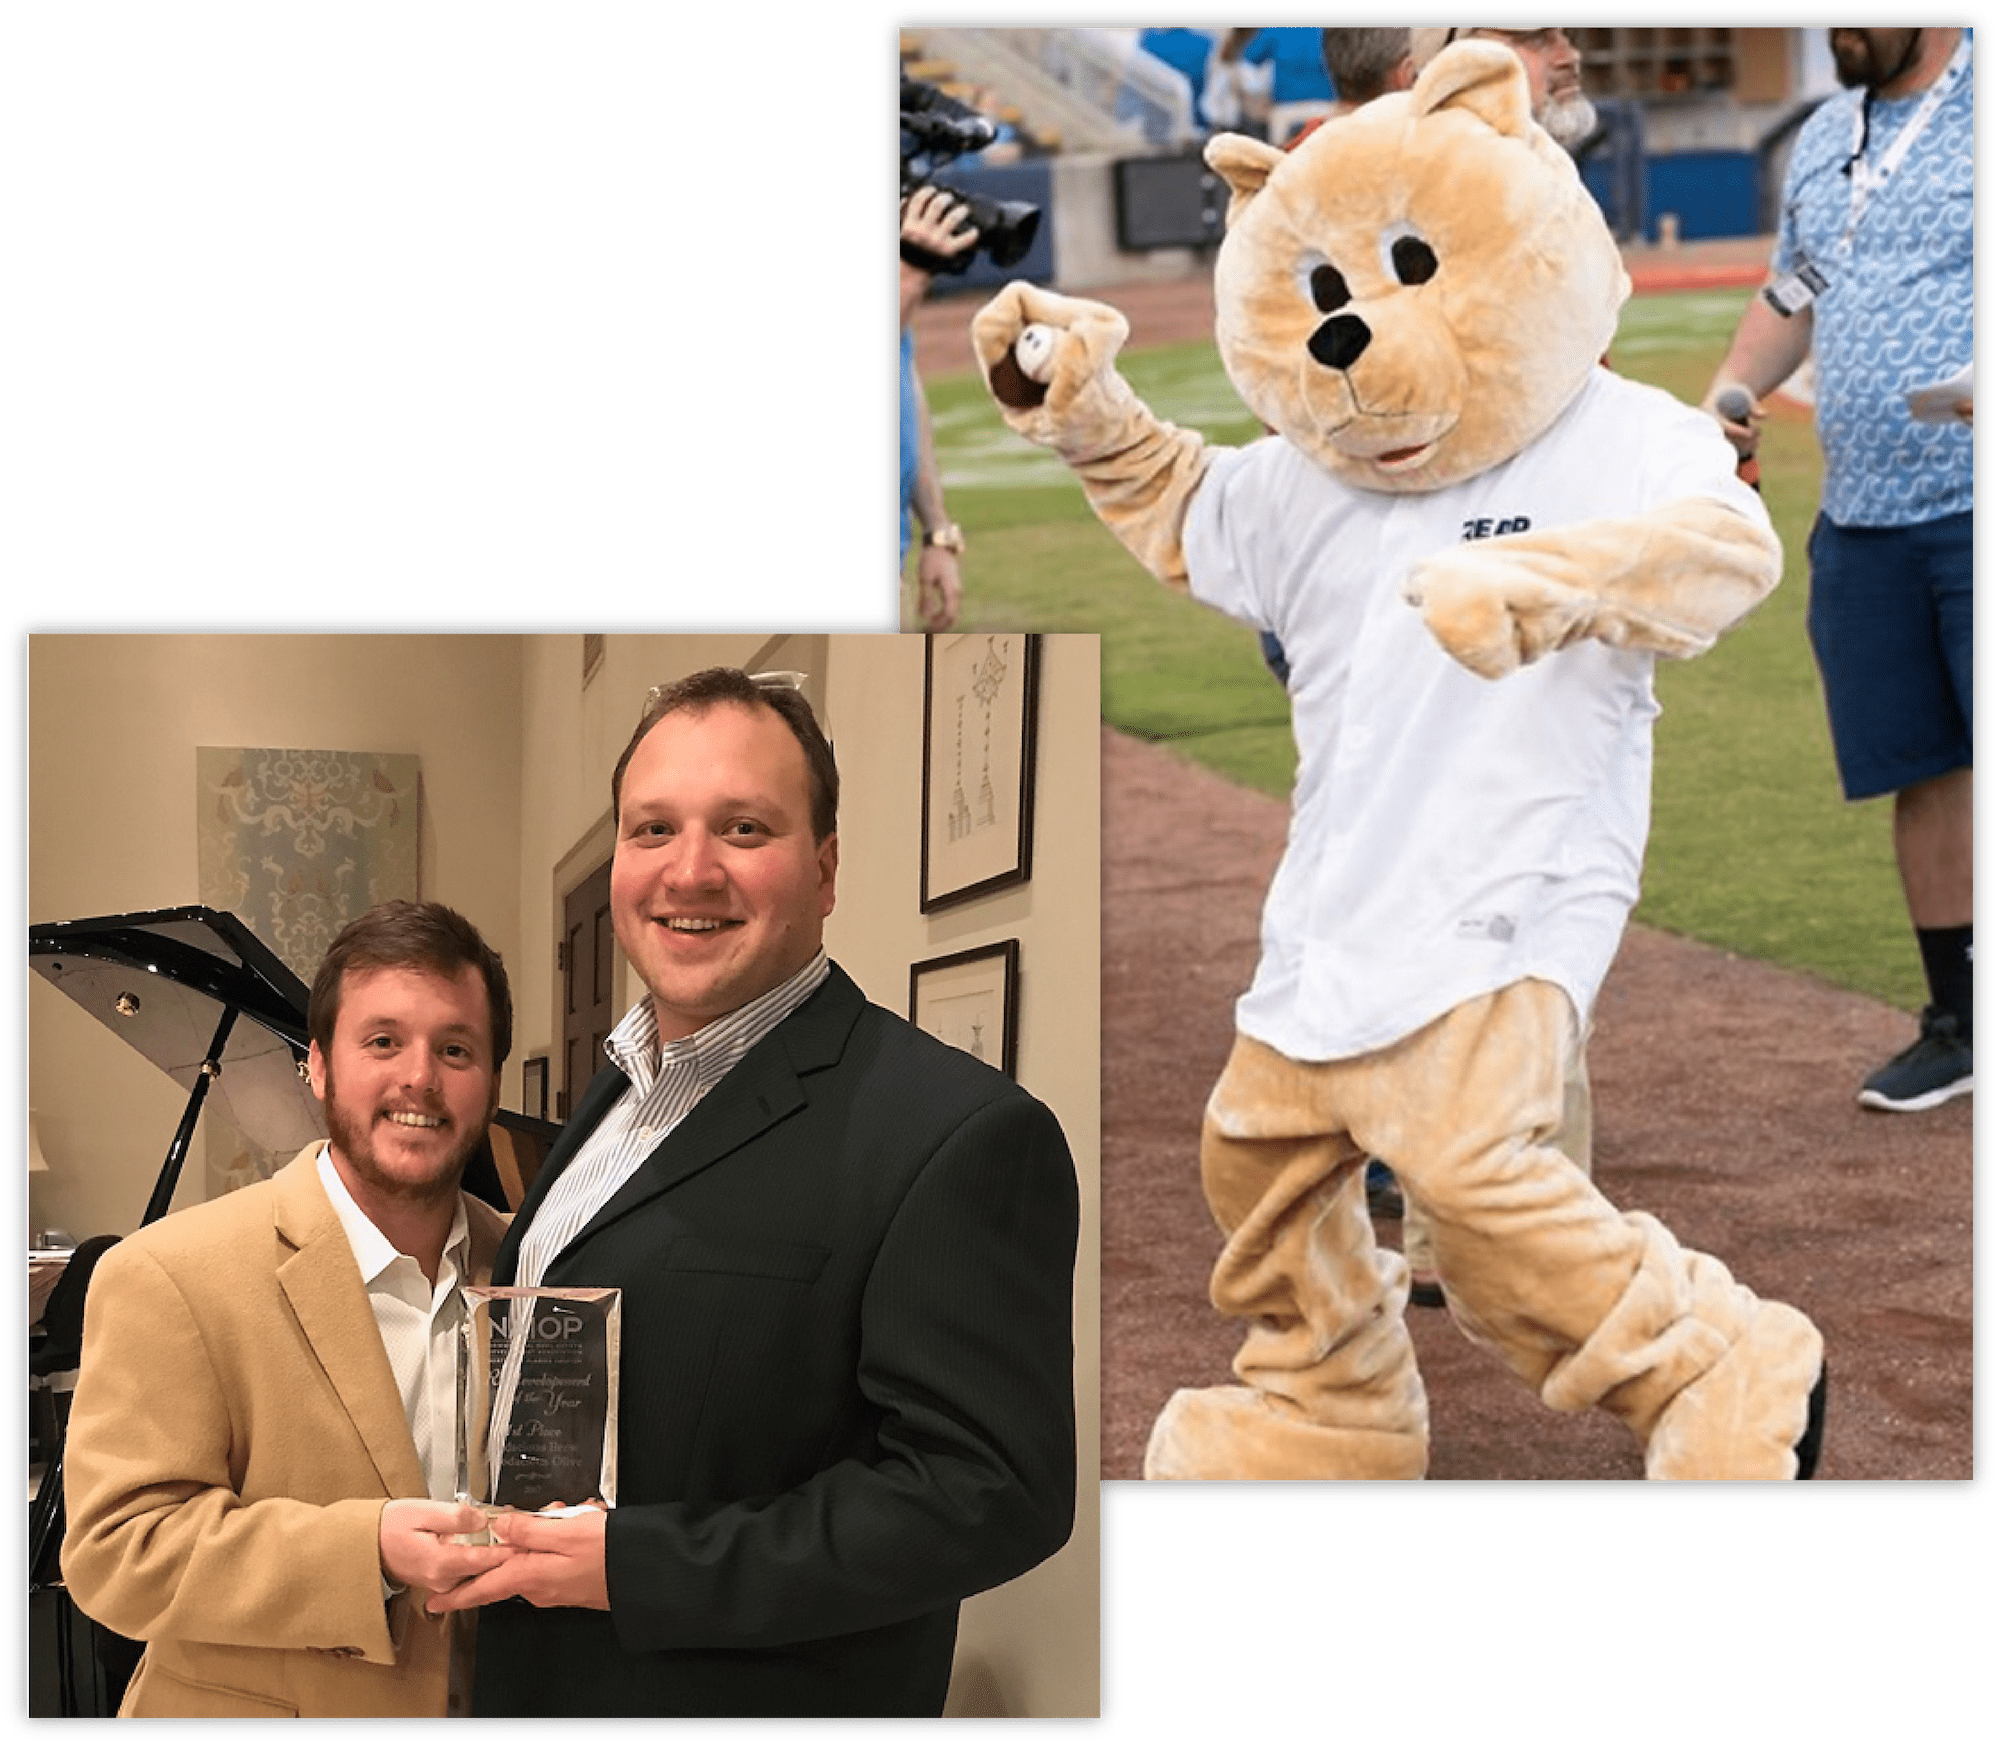 Photo of co-founder of Bear General Contractors Chris Jaubert receiving an award and a photo of Bear General Contractors' mascot